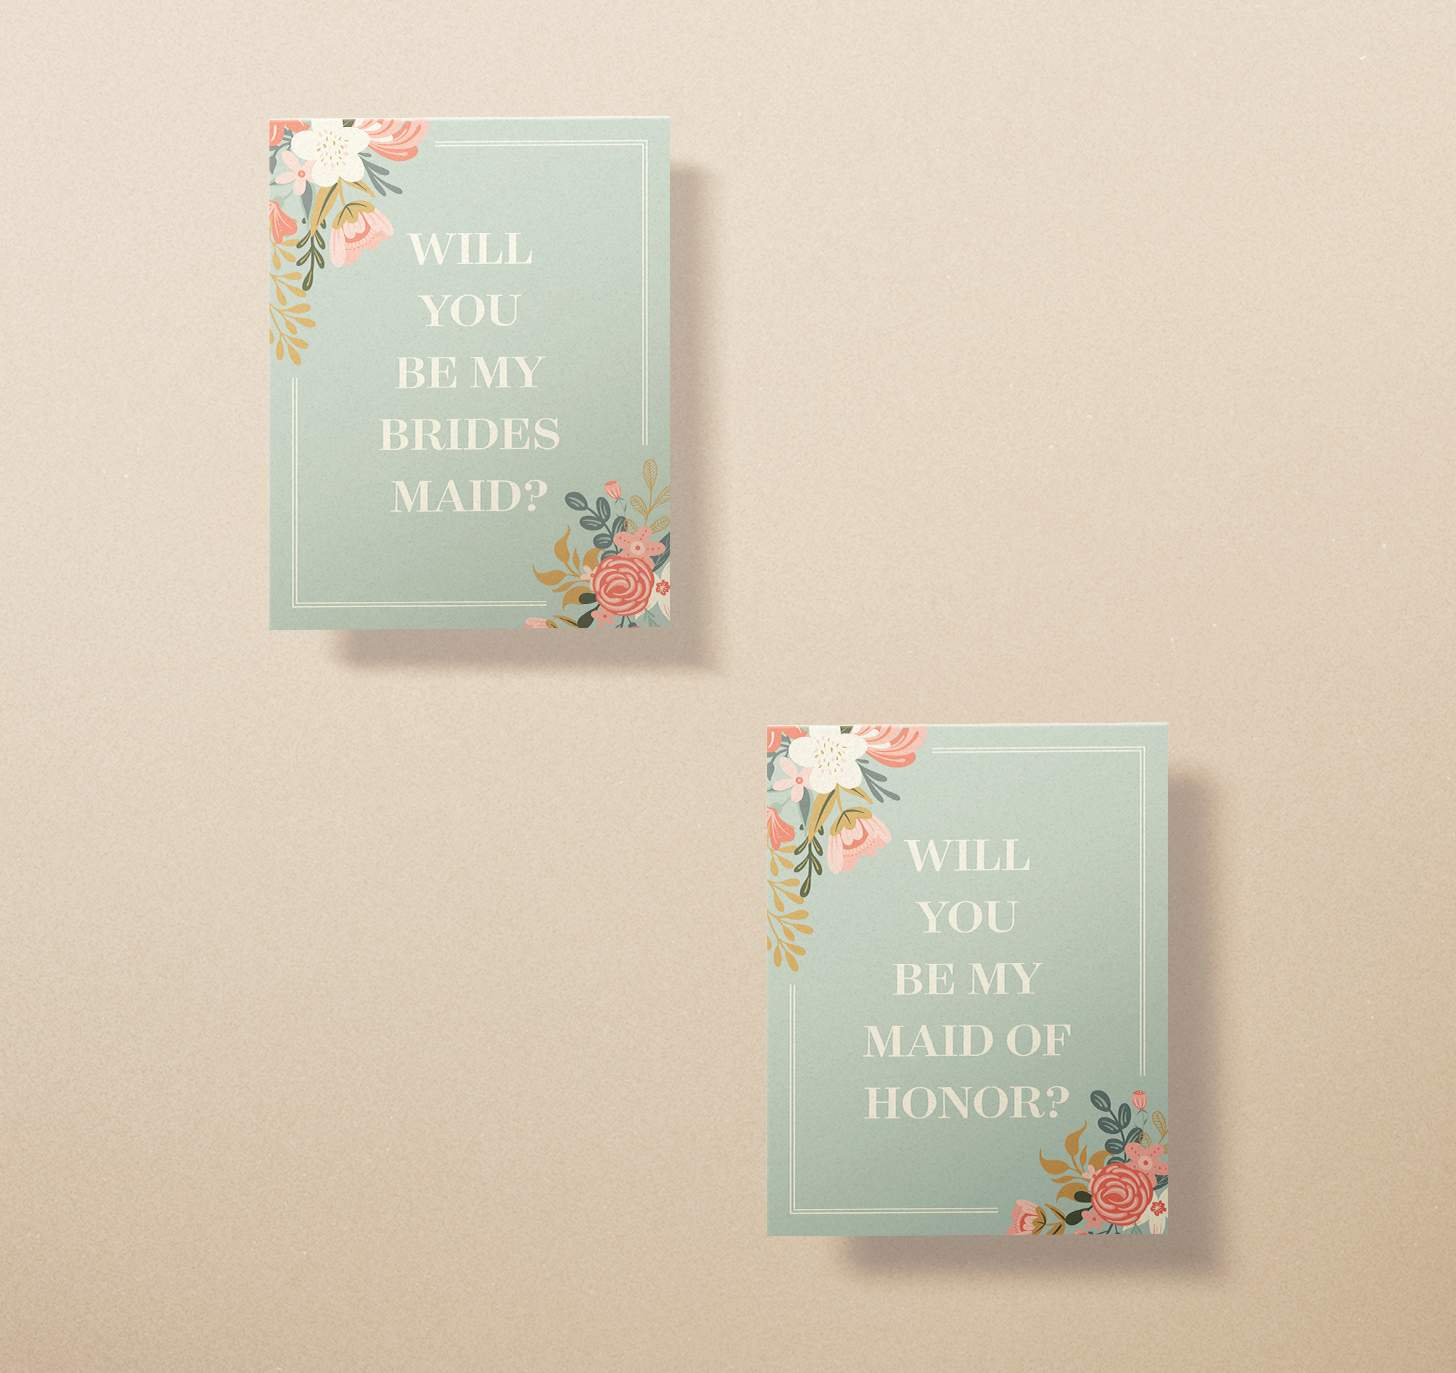 Two green wedding invitation cards with pink and white flower designs